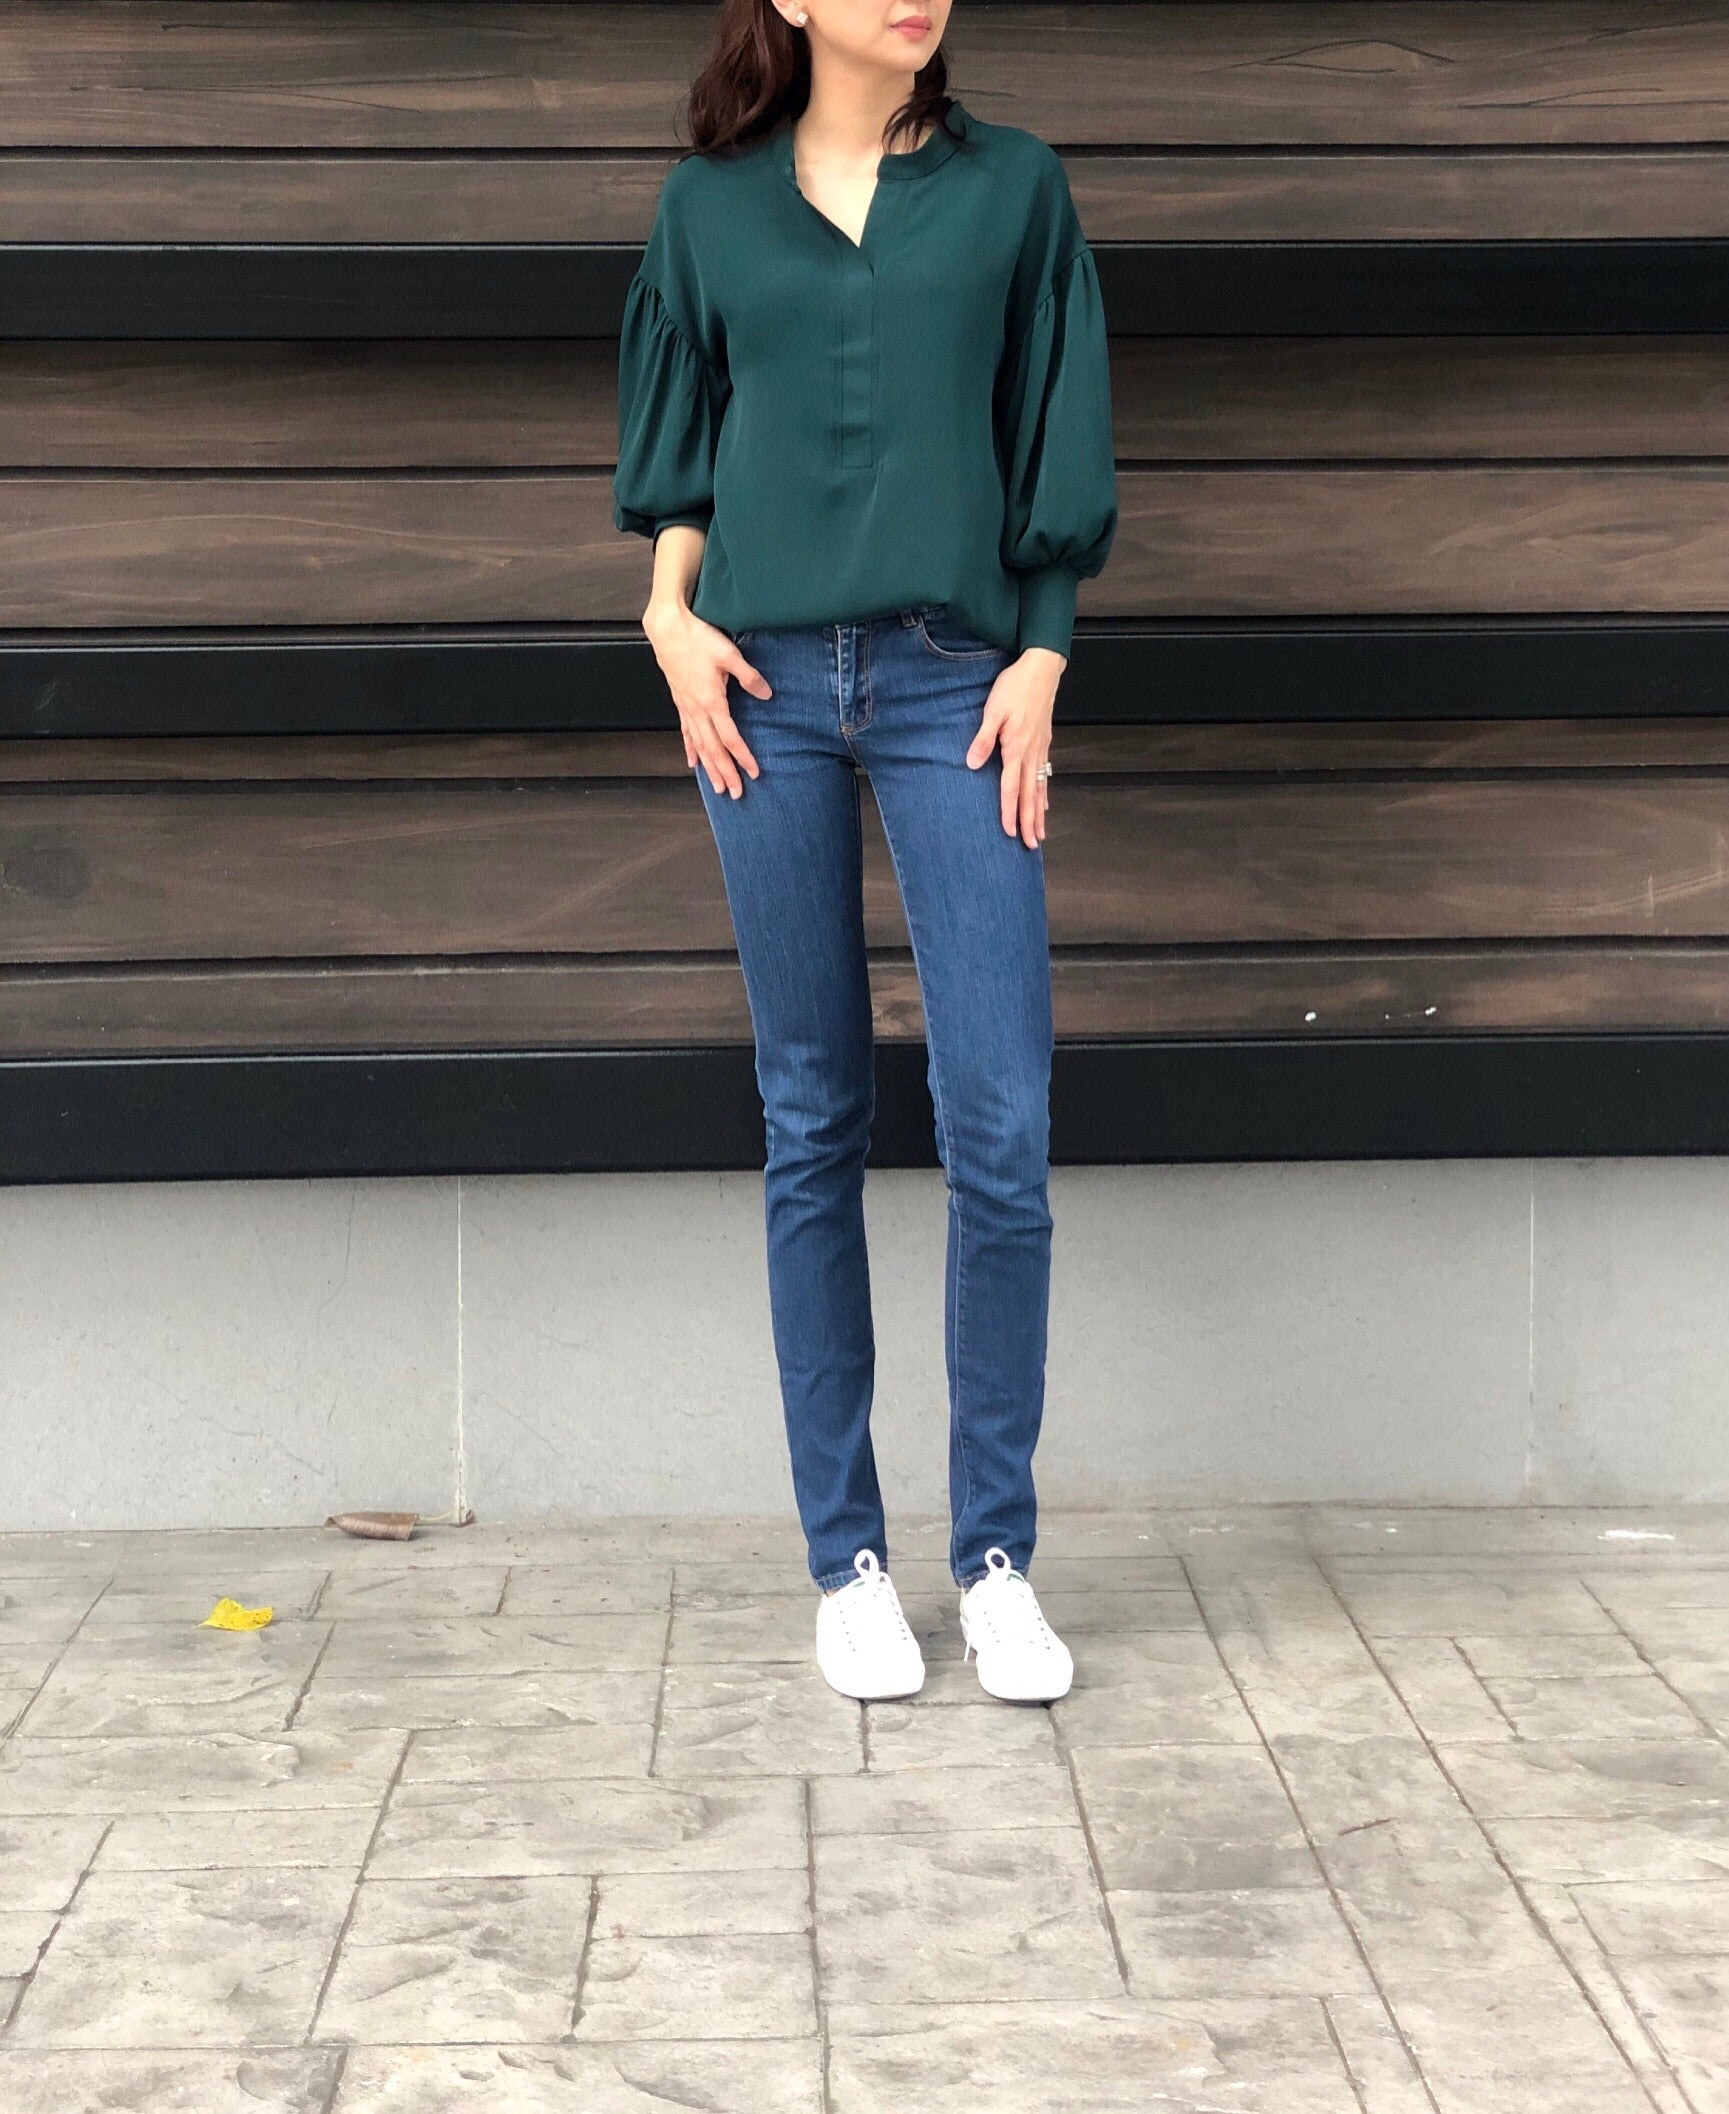 Marcia Peplum Sleeves Top in Emerald